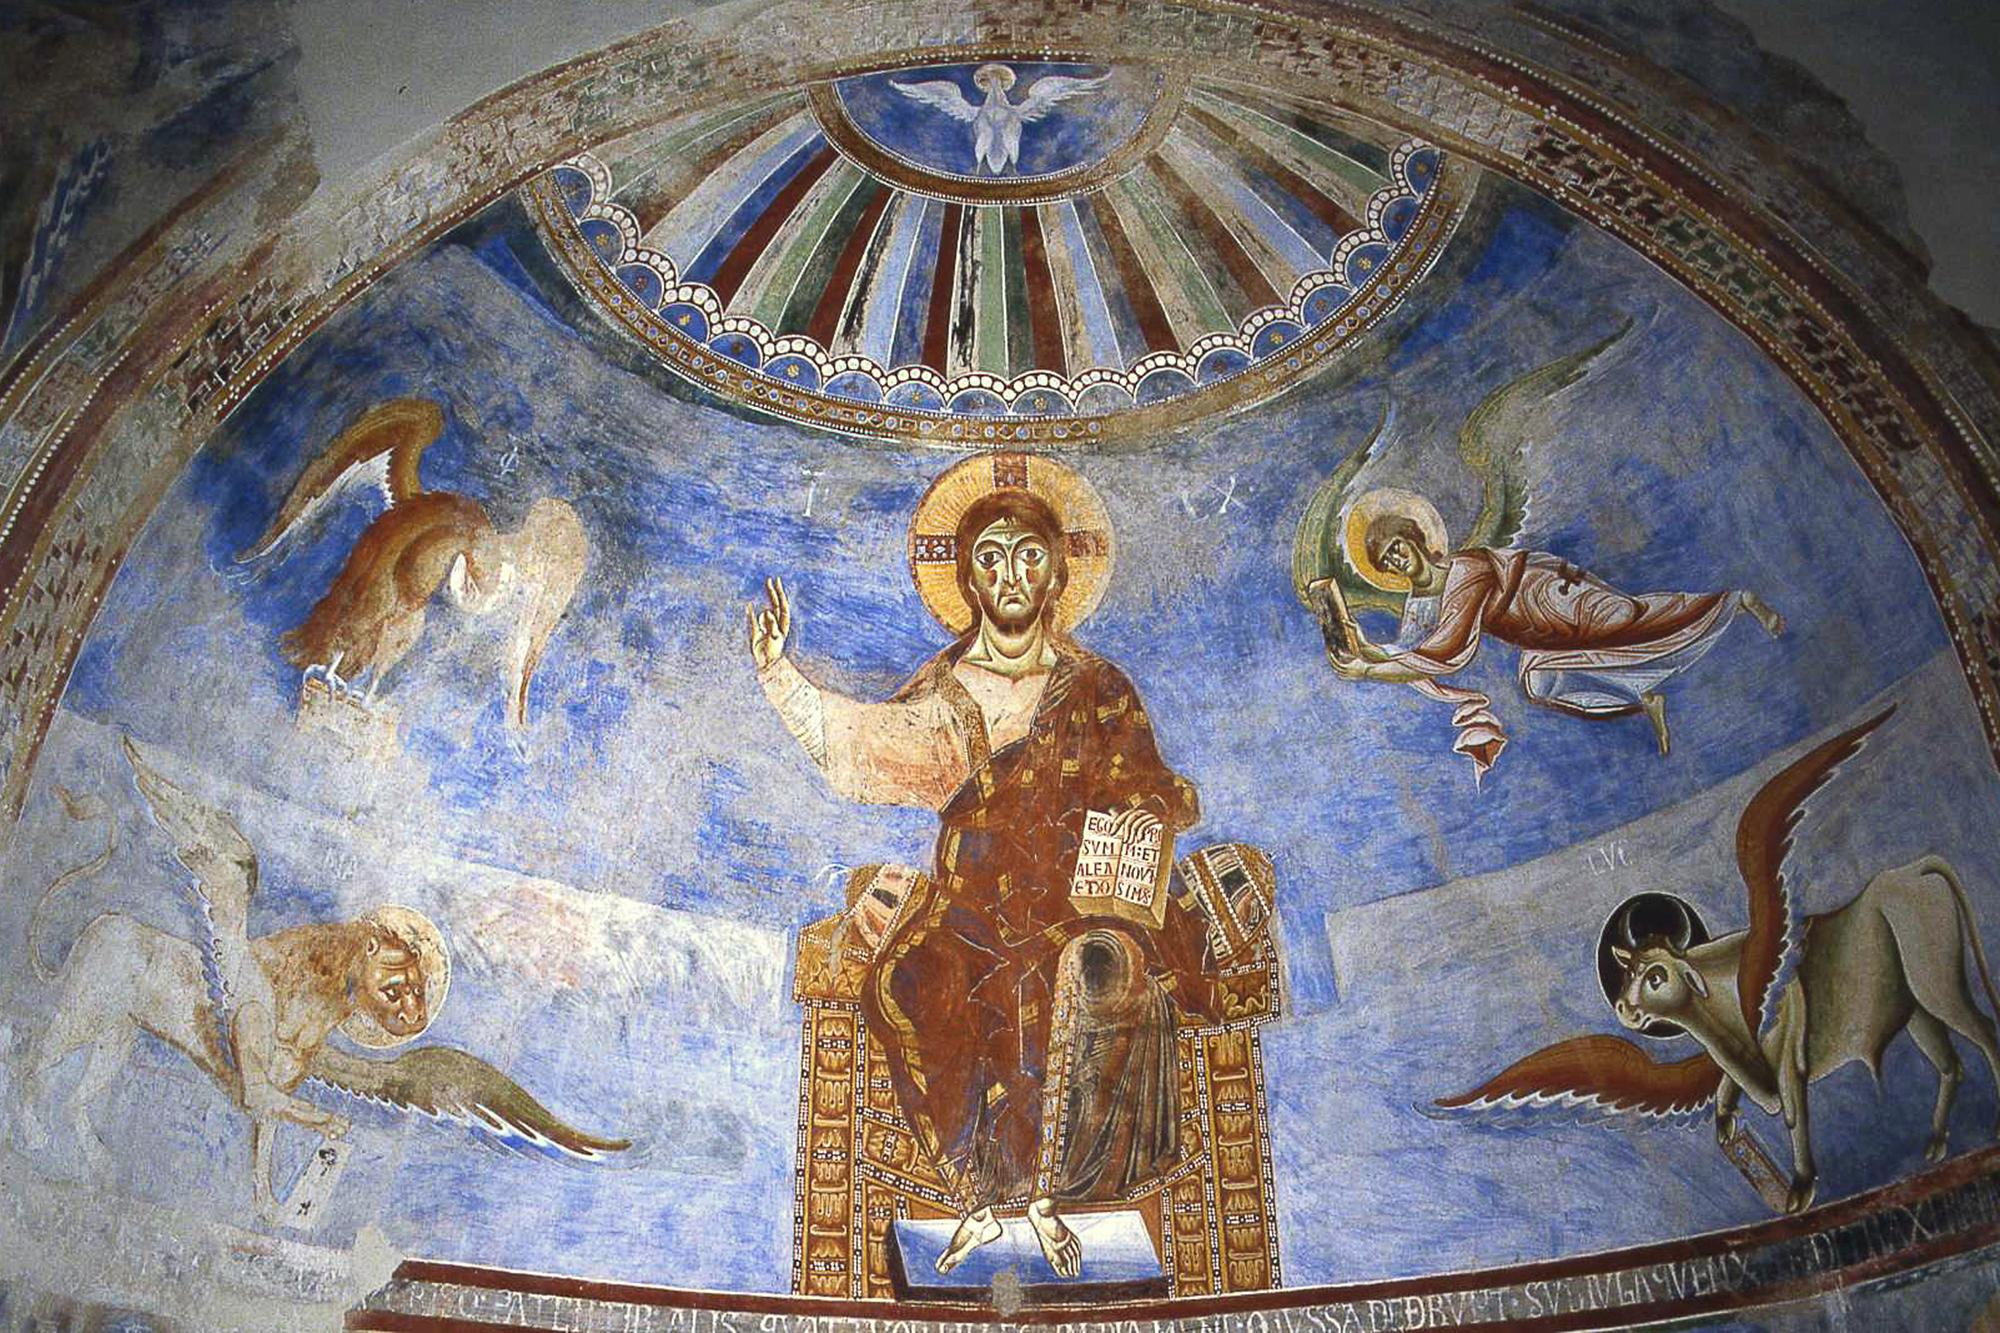 Detail of the fresco decoration of the apse with the enthroned Christ and the symbols of the four Evangelists. – © Caserta Royal Palace Archive